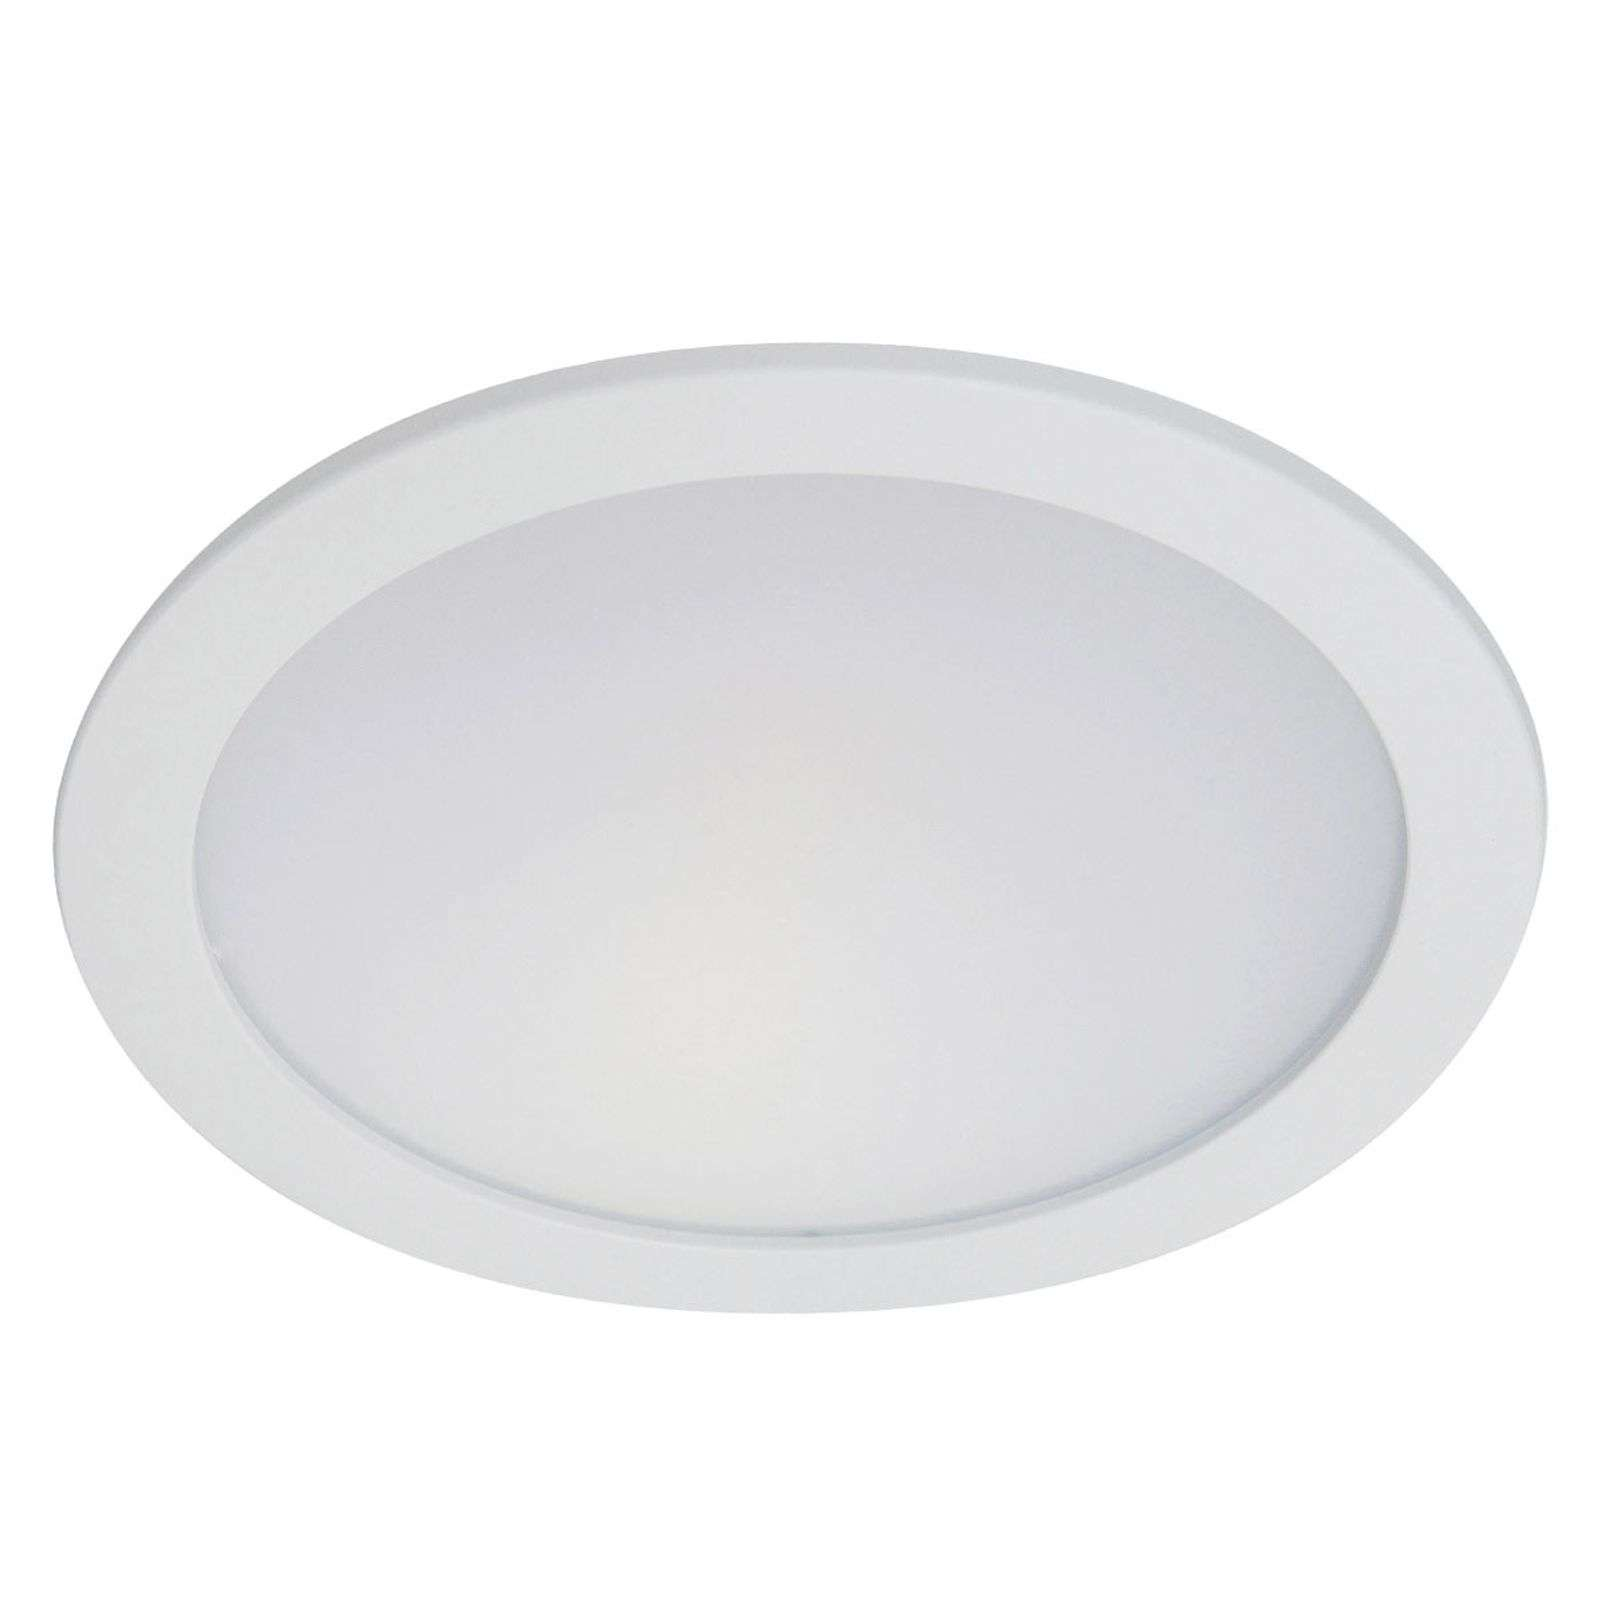 Downlight LED puissant Hony, 43 W, 4 000 K